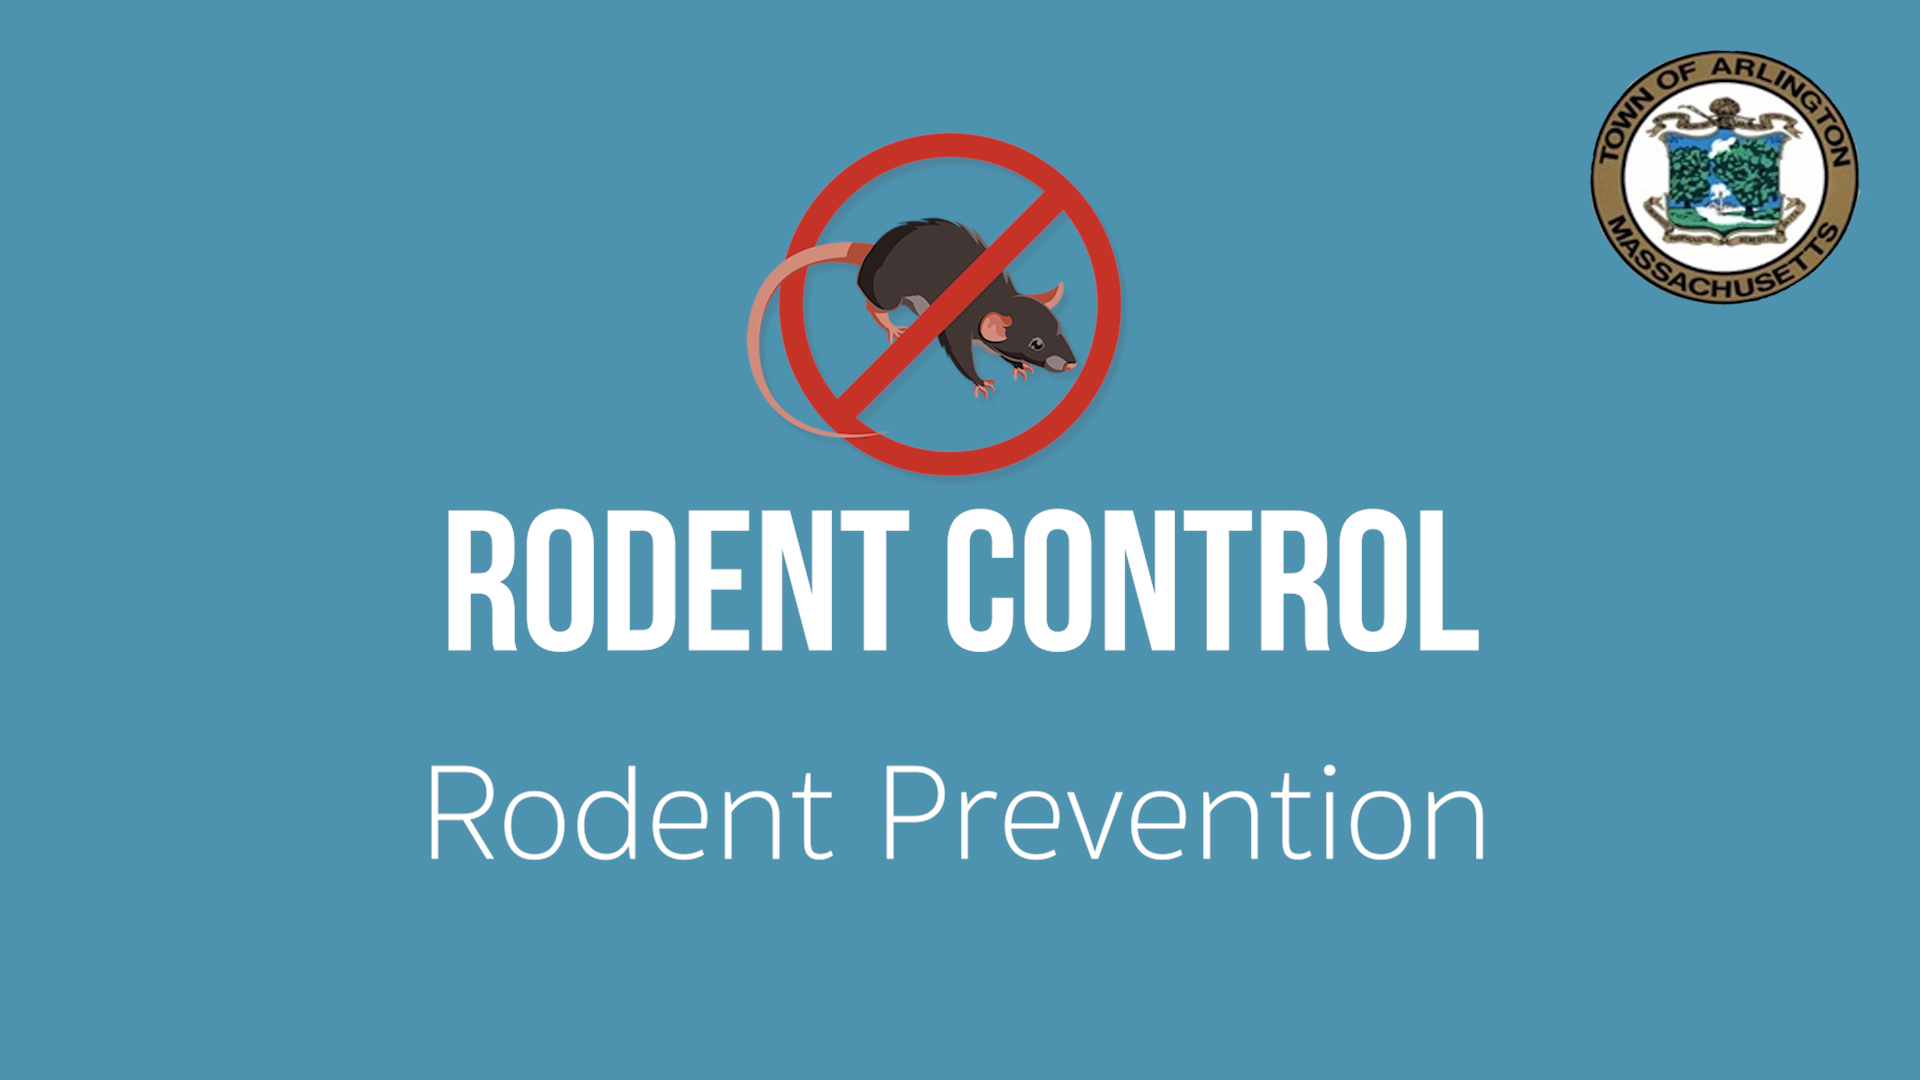 Rodent Control and Prevention in Arlington, MA - Ep  1